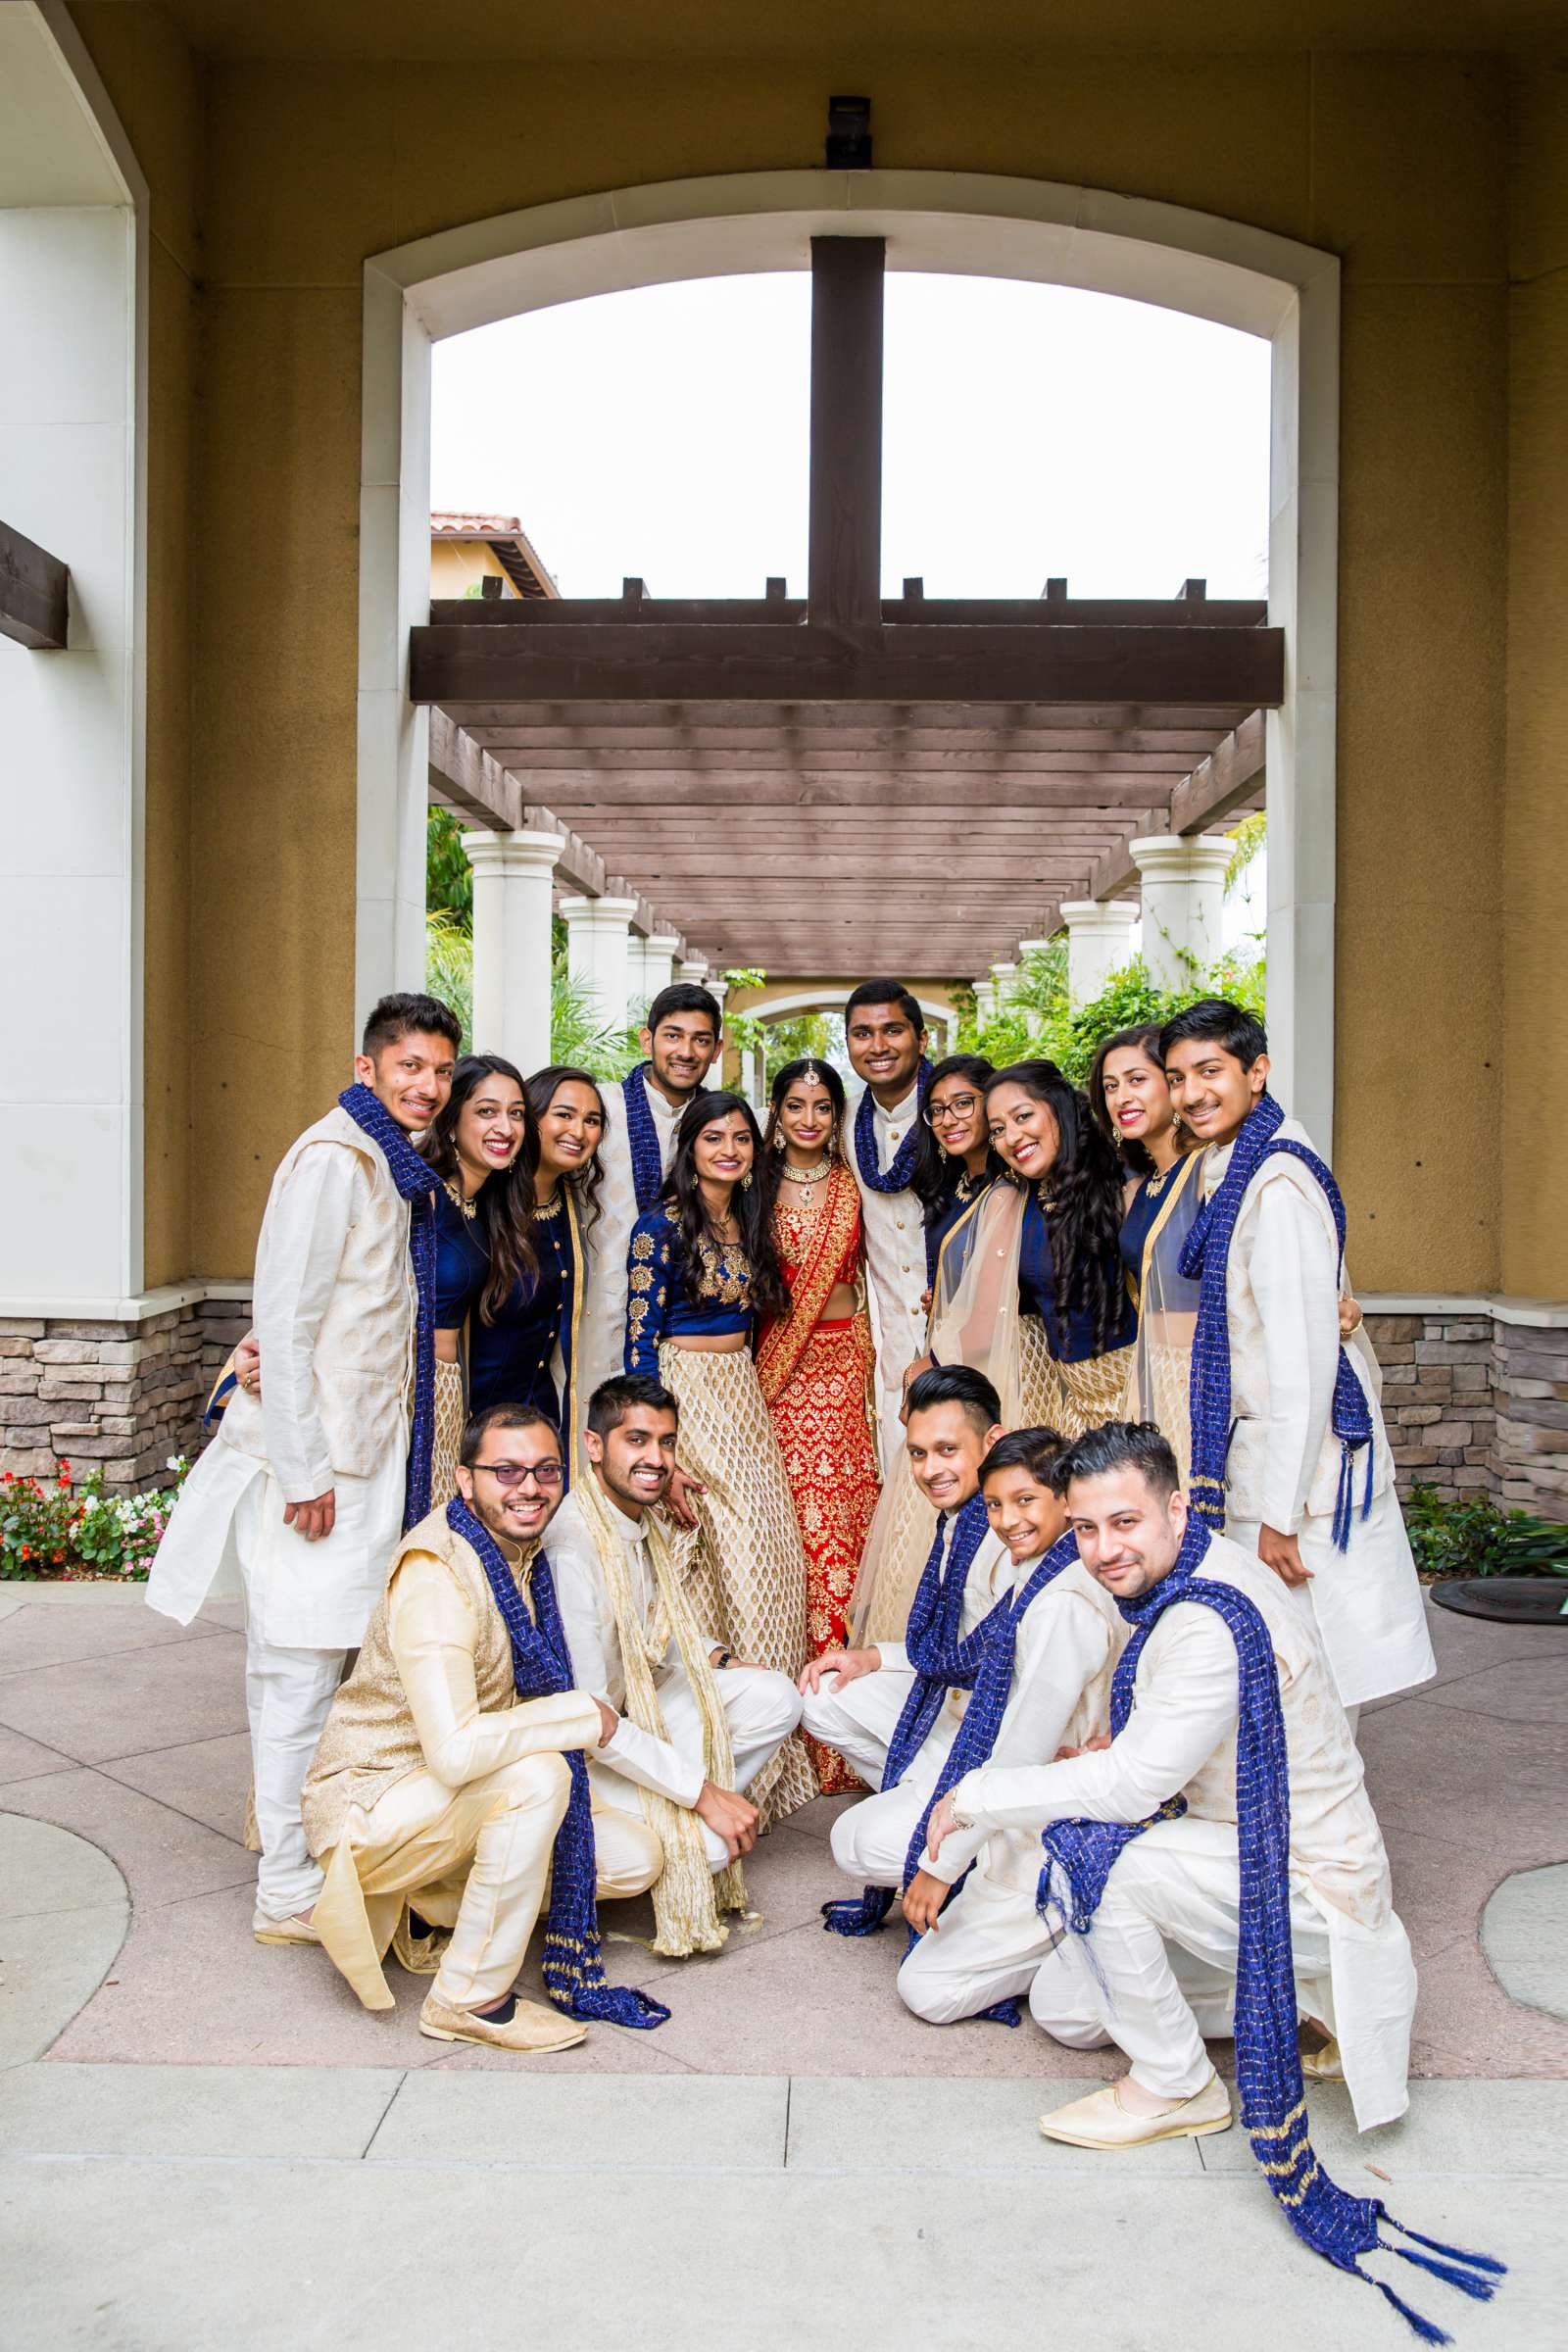 The Westin Carlsbad Resort and Spa Wedding coordinated by Shilpa Patel Events, Ami and Amit Wedding Photo #22 by True Photography